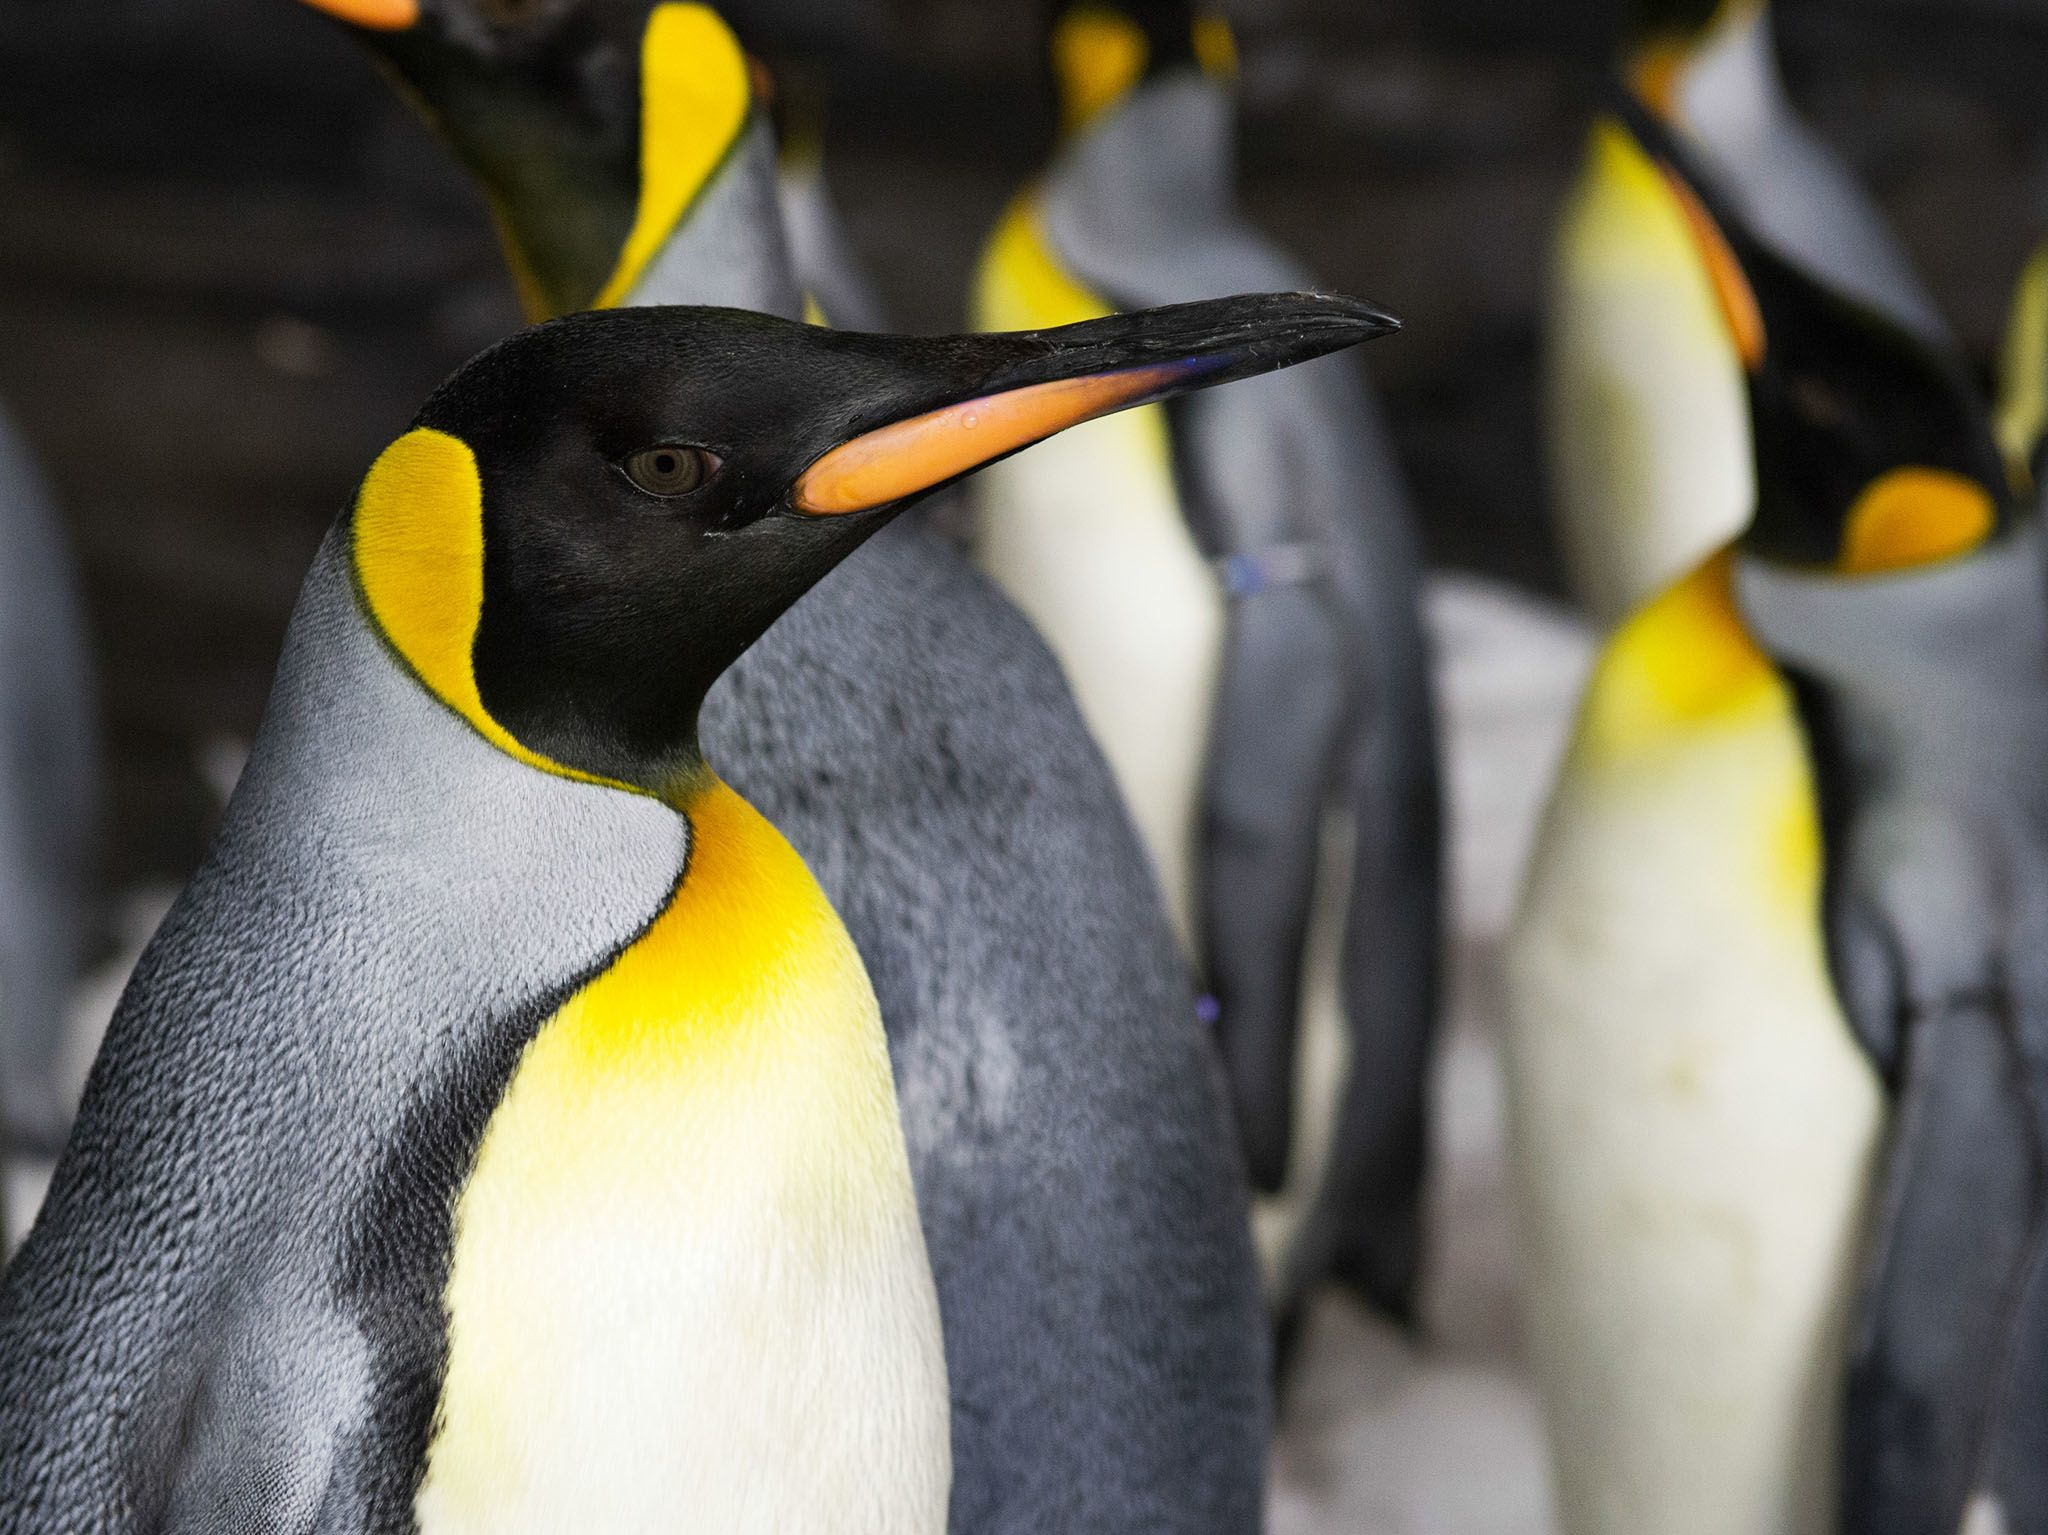 SeaWorld, Orlando, FL: Close up of  penguins in enclosure. This image is from Penguinpalooza. [Photo of the day - آوریل 2017]